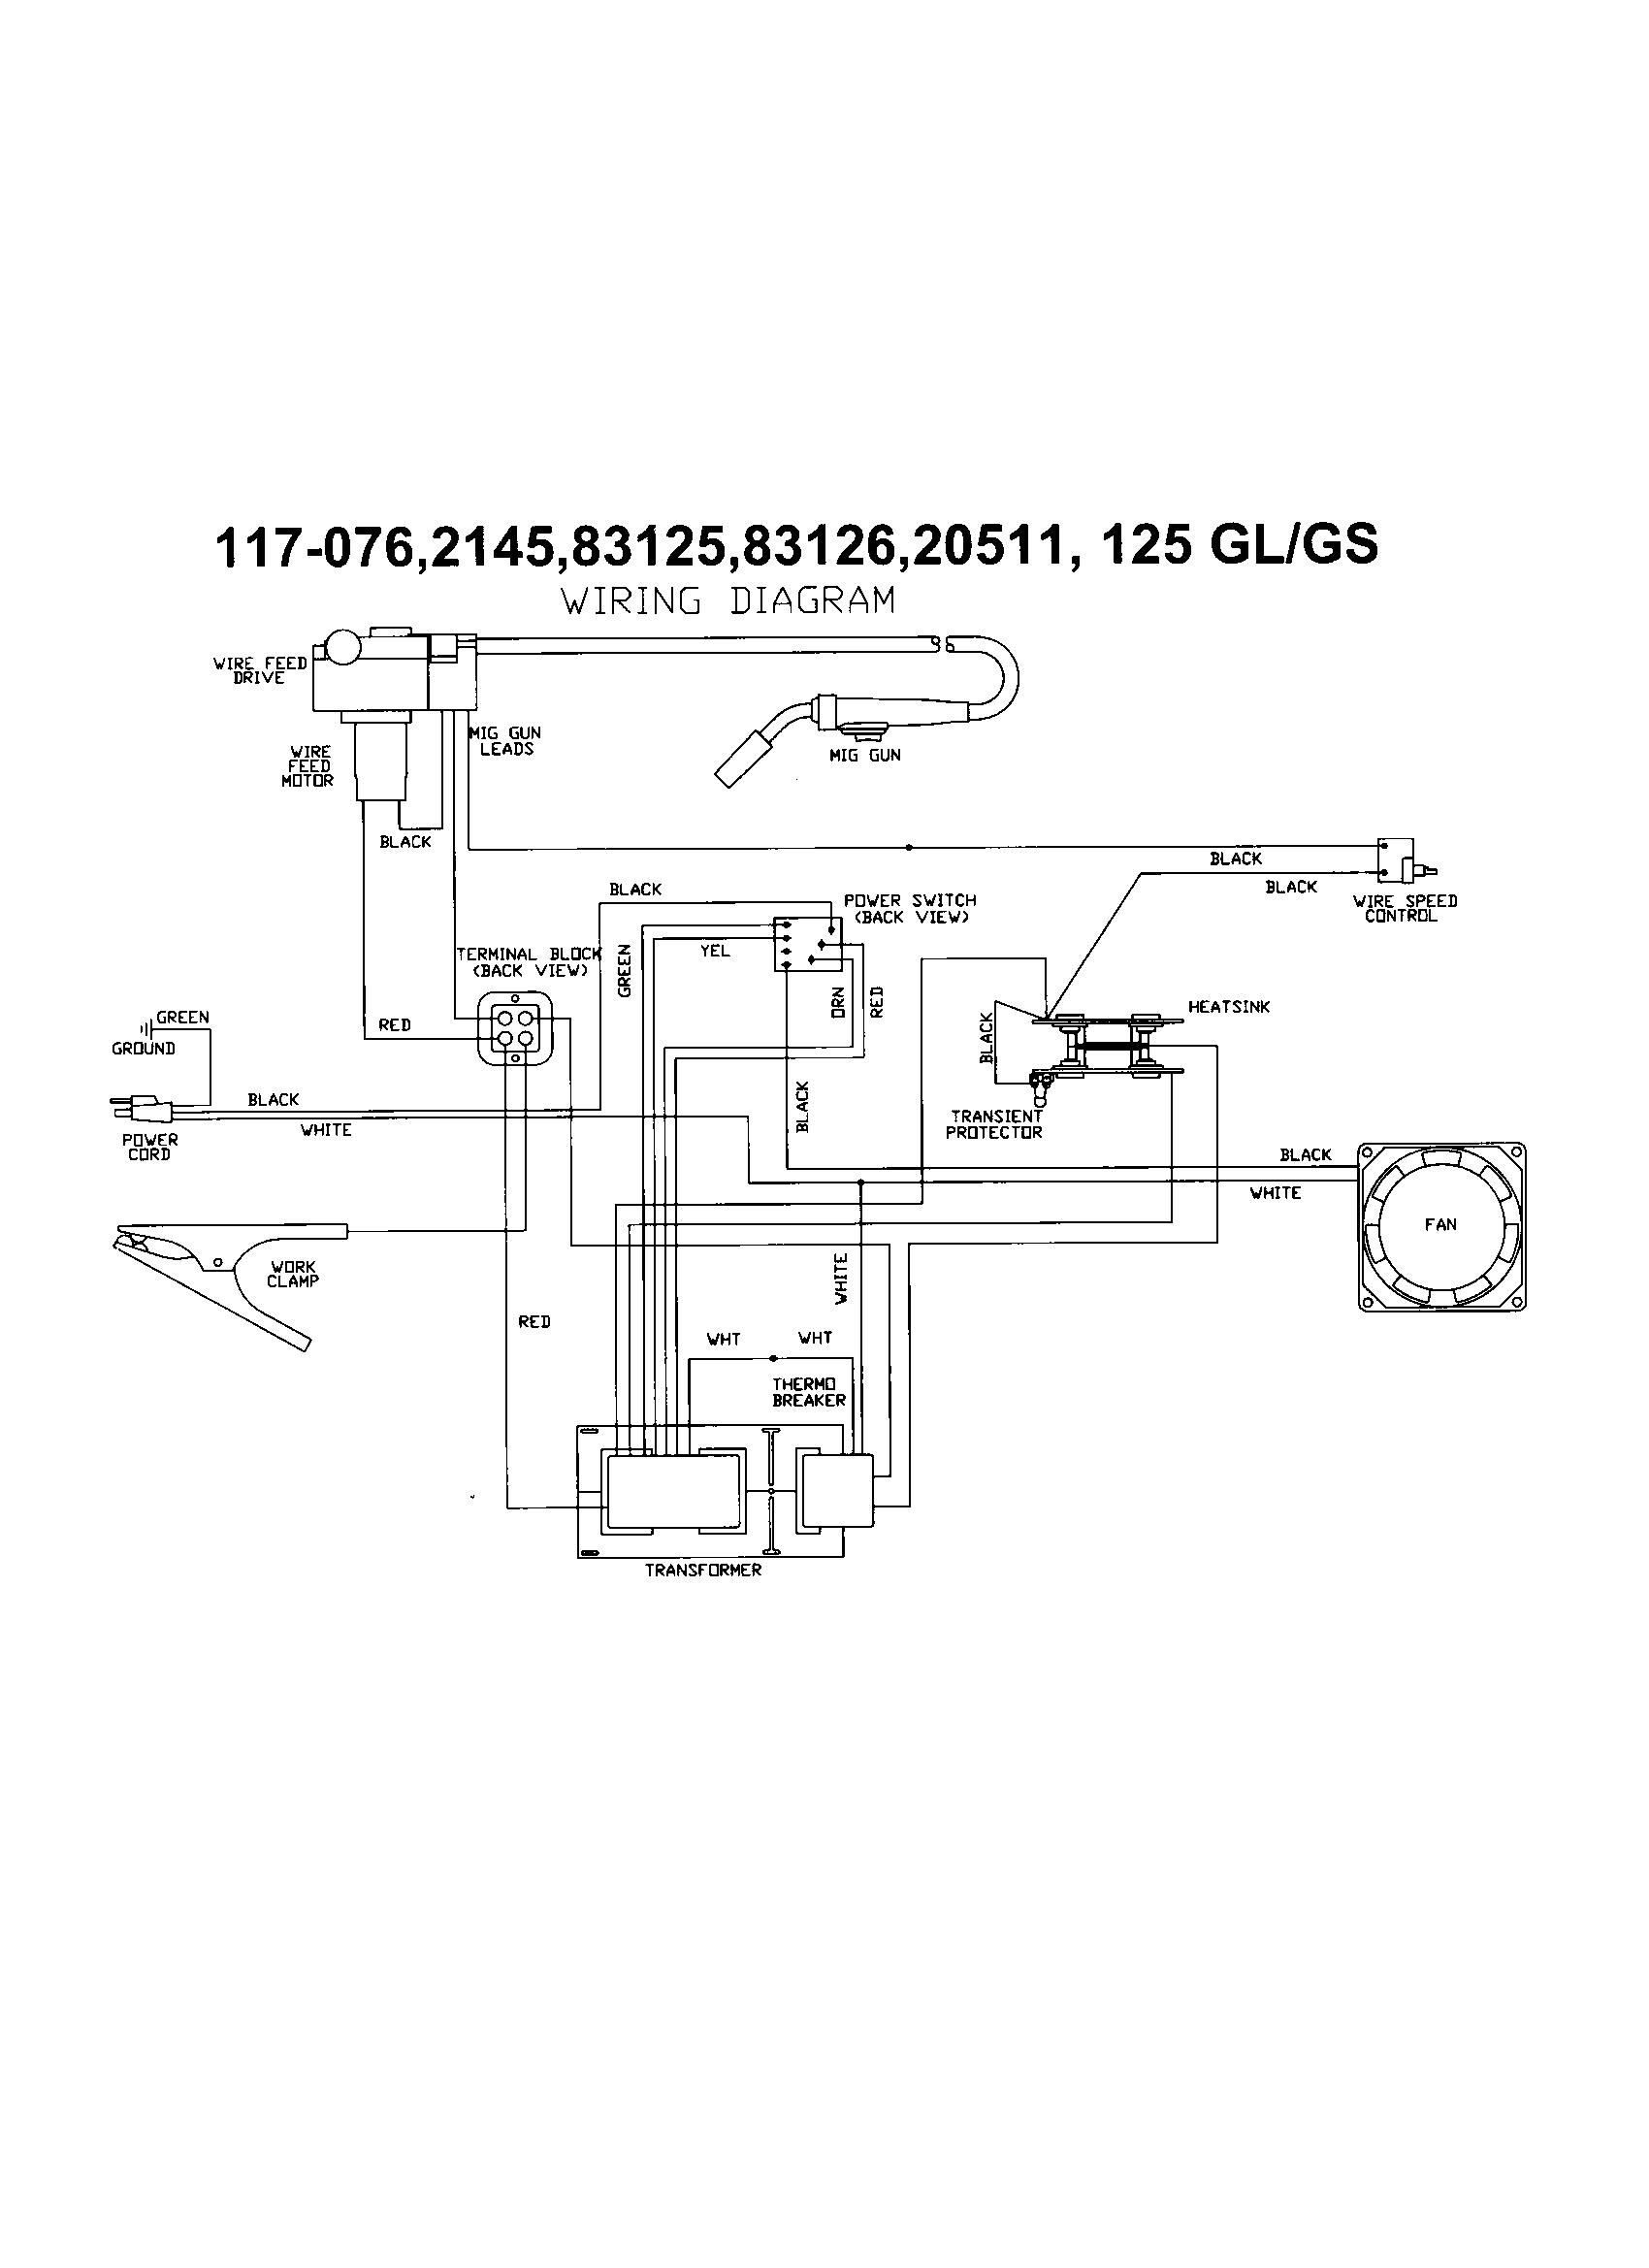 Wiring Diagram For Lincoln Welding Machine | Wiring Diagram - Lincoln 225 Arc Welder Wiring Diagram